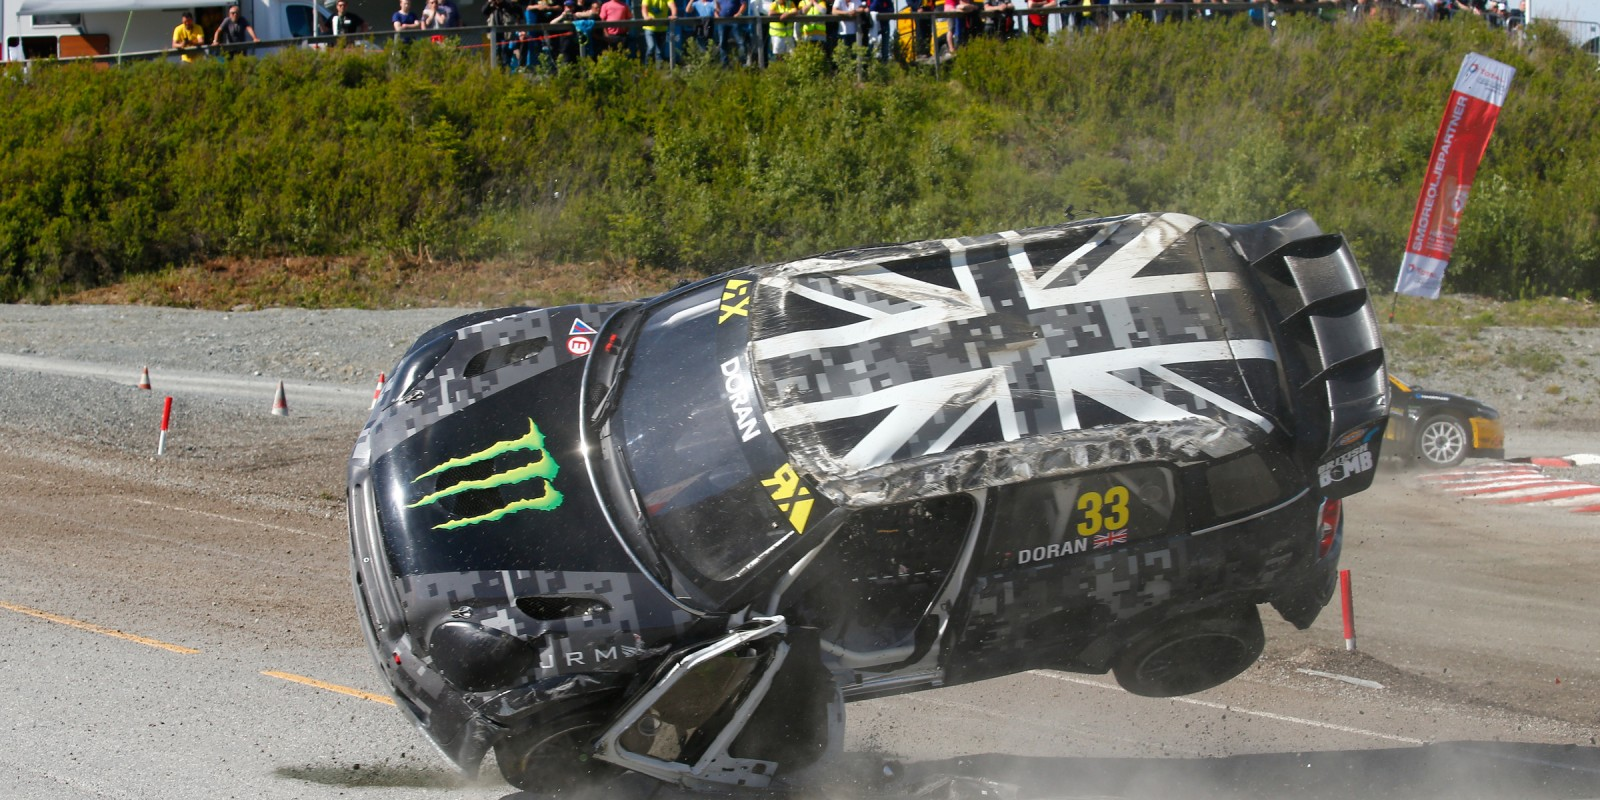 Day one images from the 2016 World RX of Norway